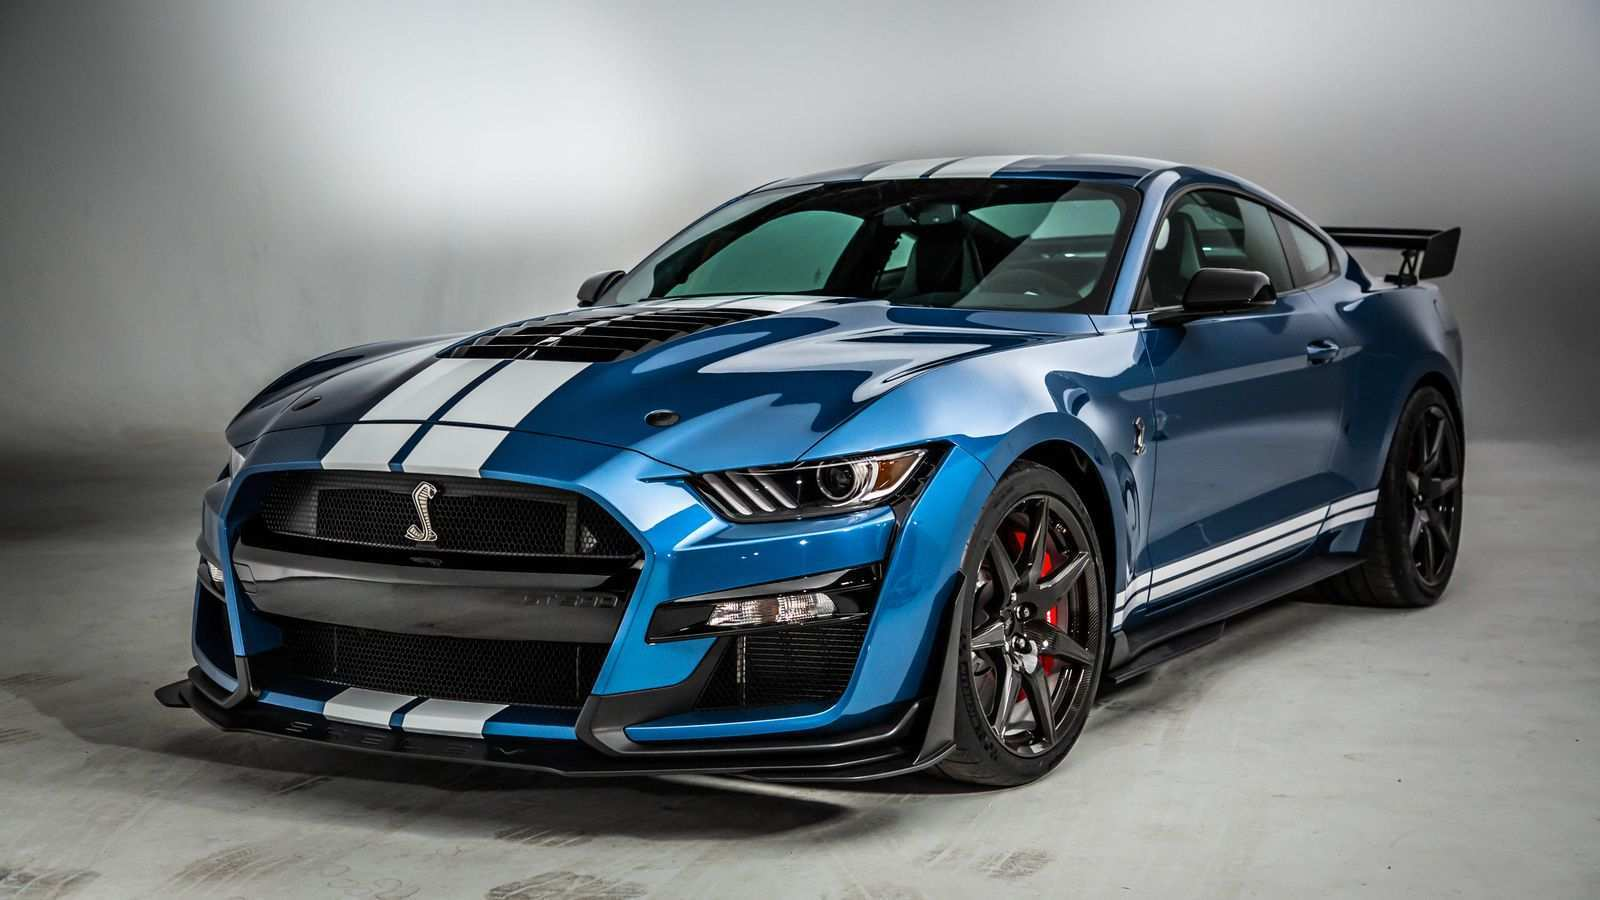 82 The 2020 Ford Mustang Shelby Gt 350 History for 2020 Ford Mustang Shelby Gt 350